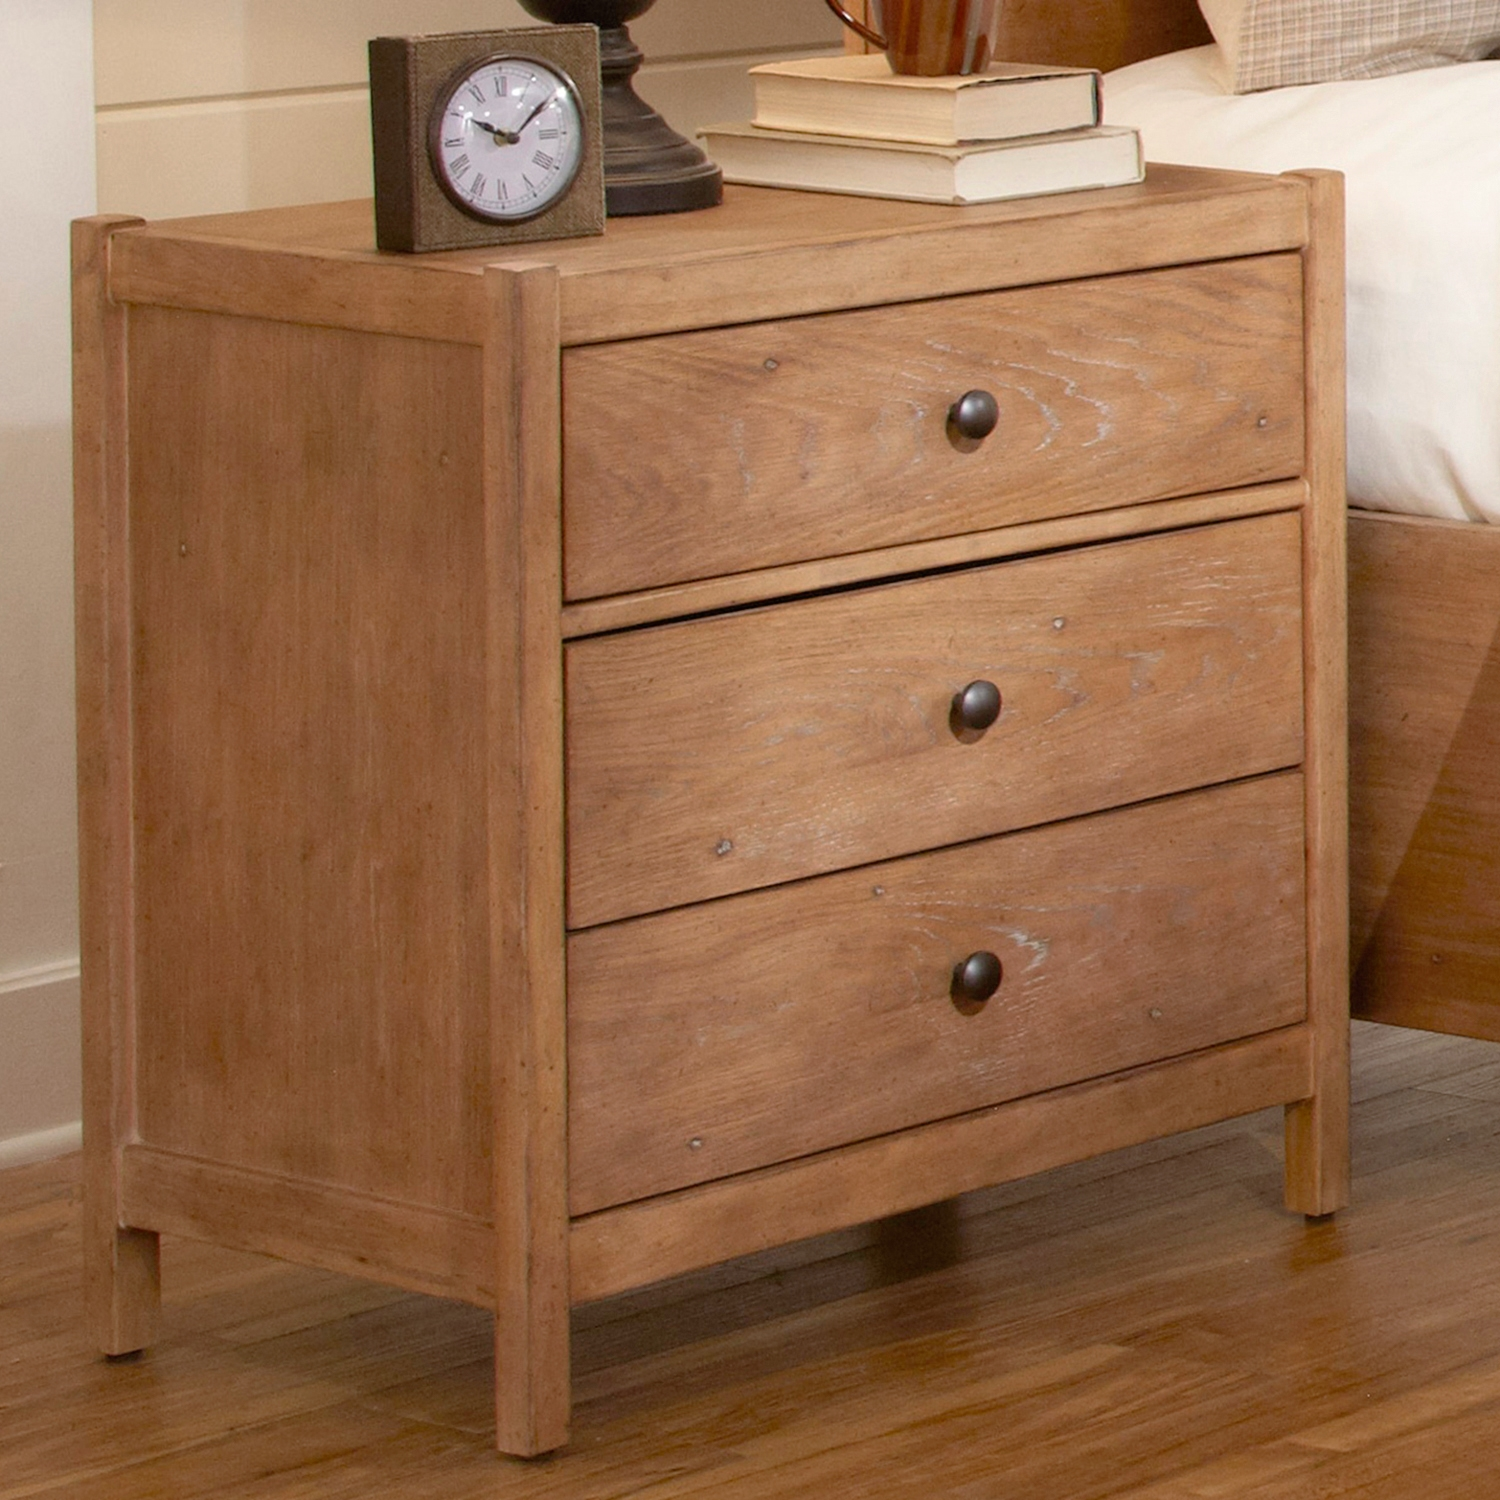 Natural Elements Nightstand In Soft Driftwood With Off